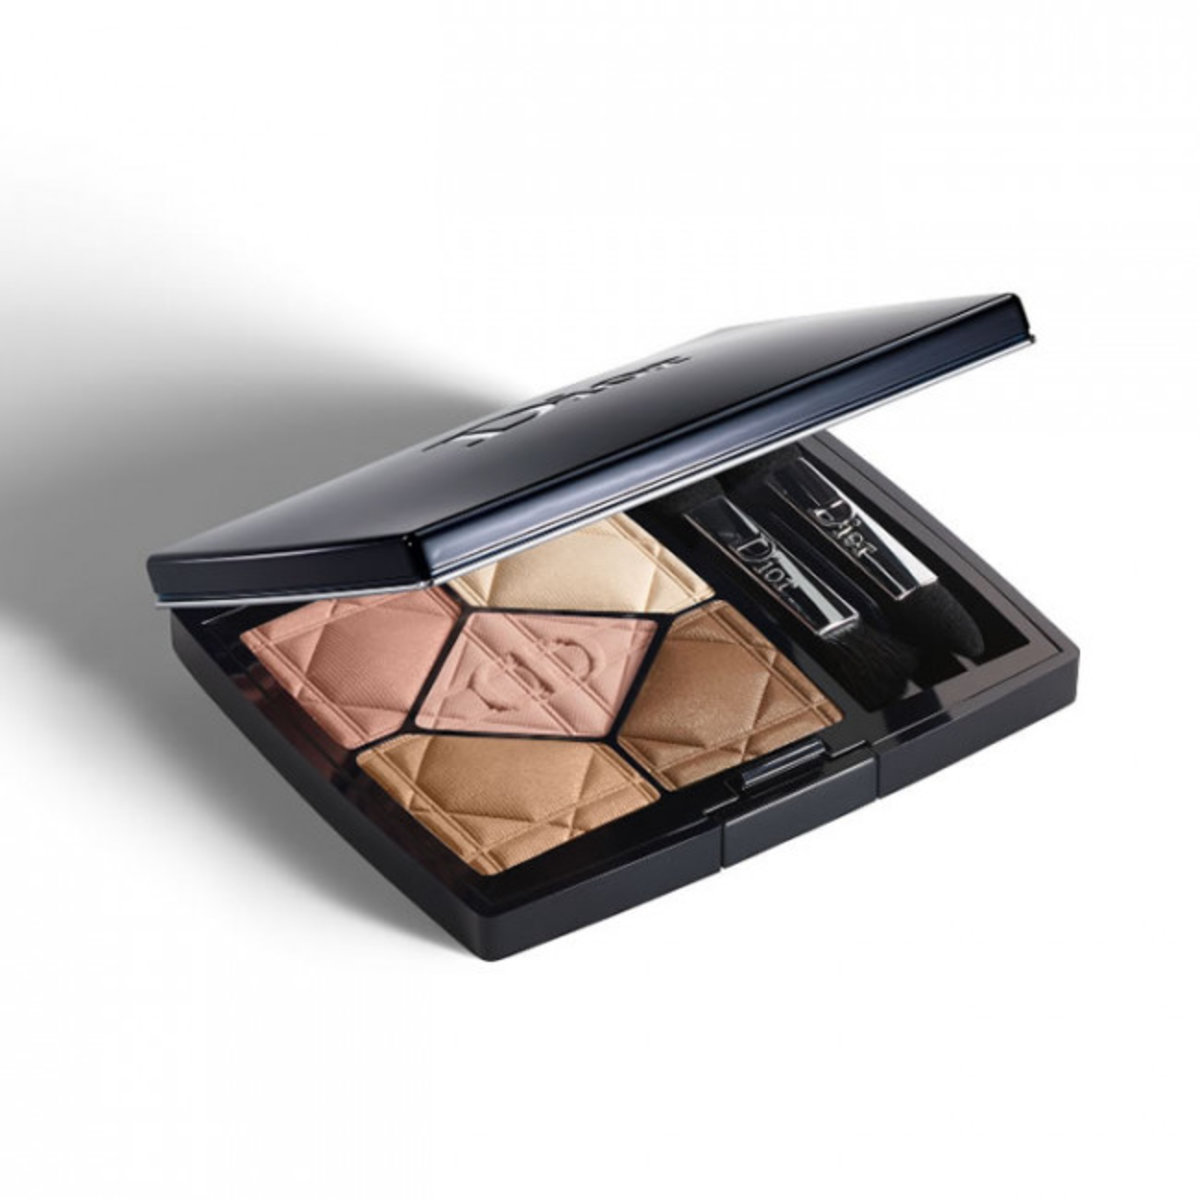 Eyeshadow Palette 7g #537 [Parallel Import]